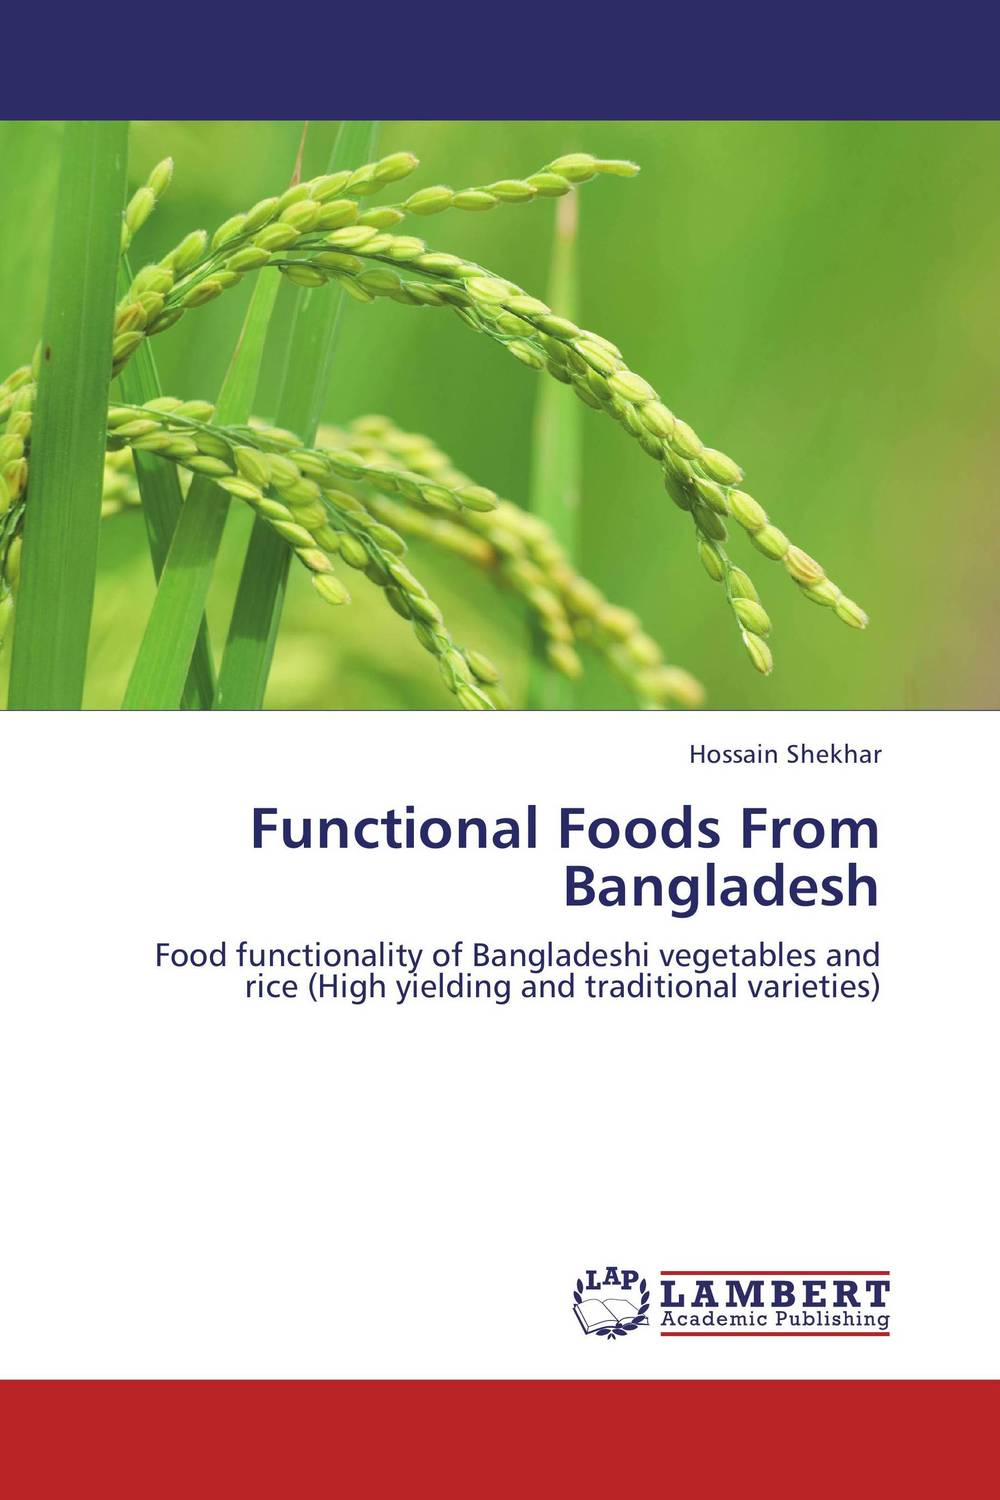 Functional Foods From Bangladesh